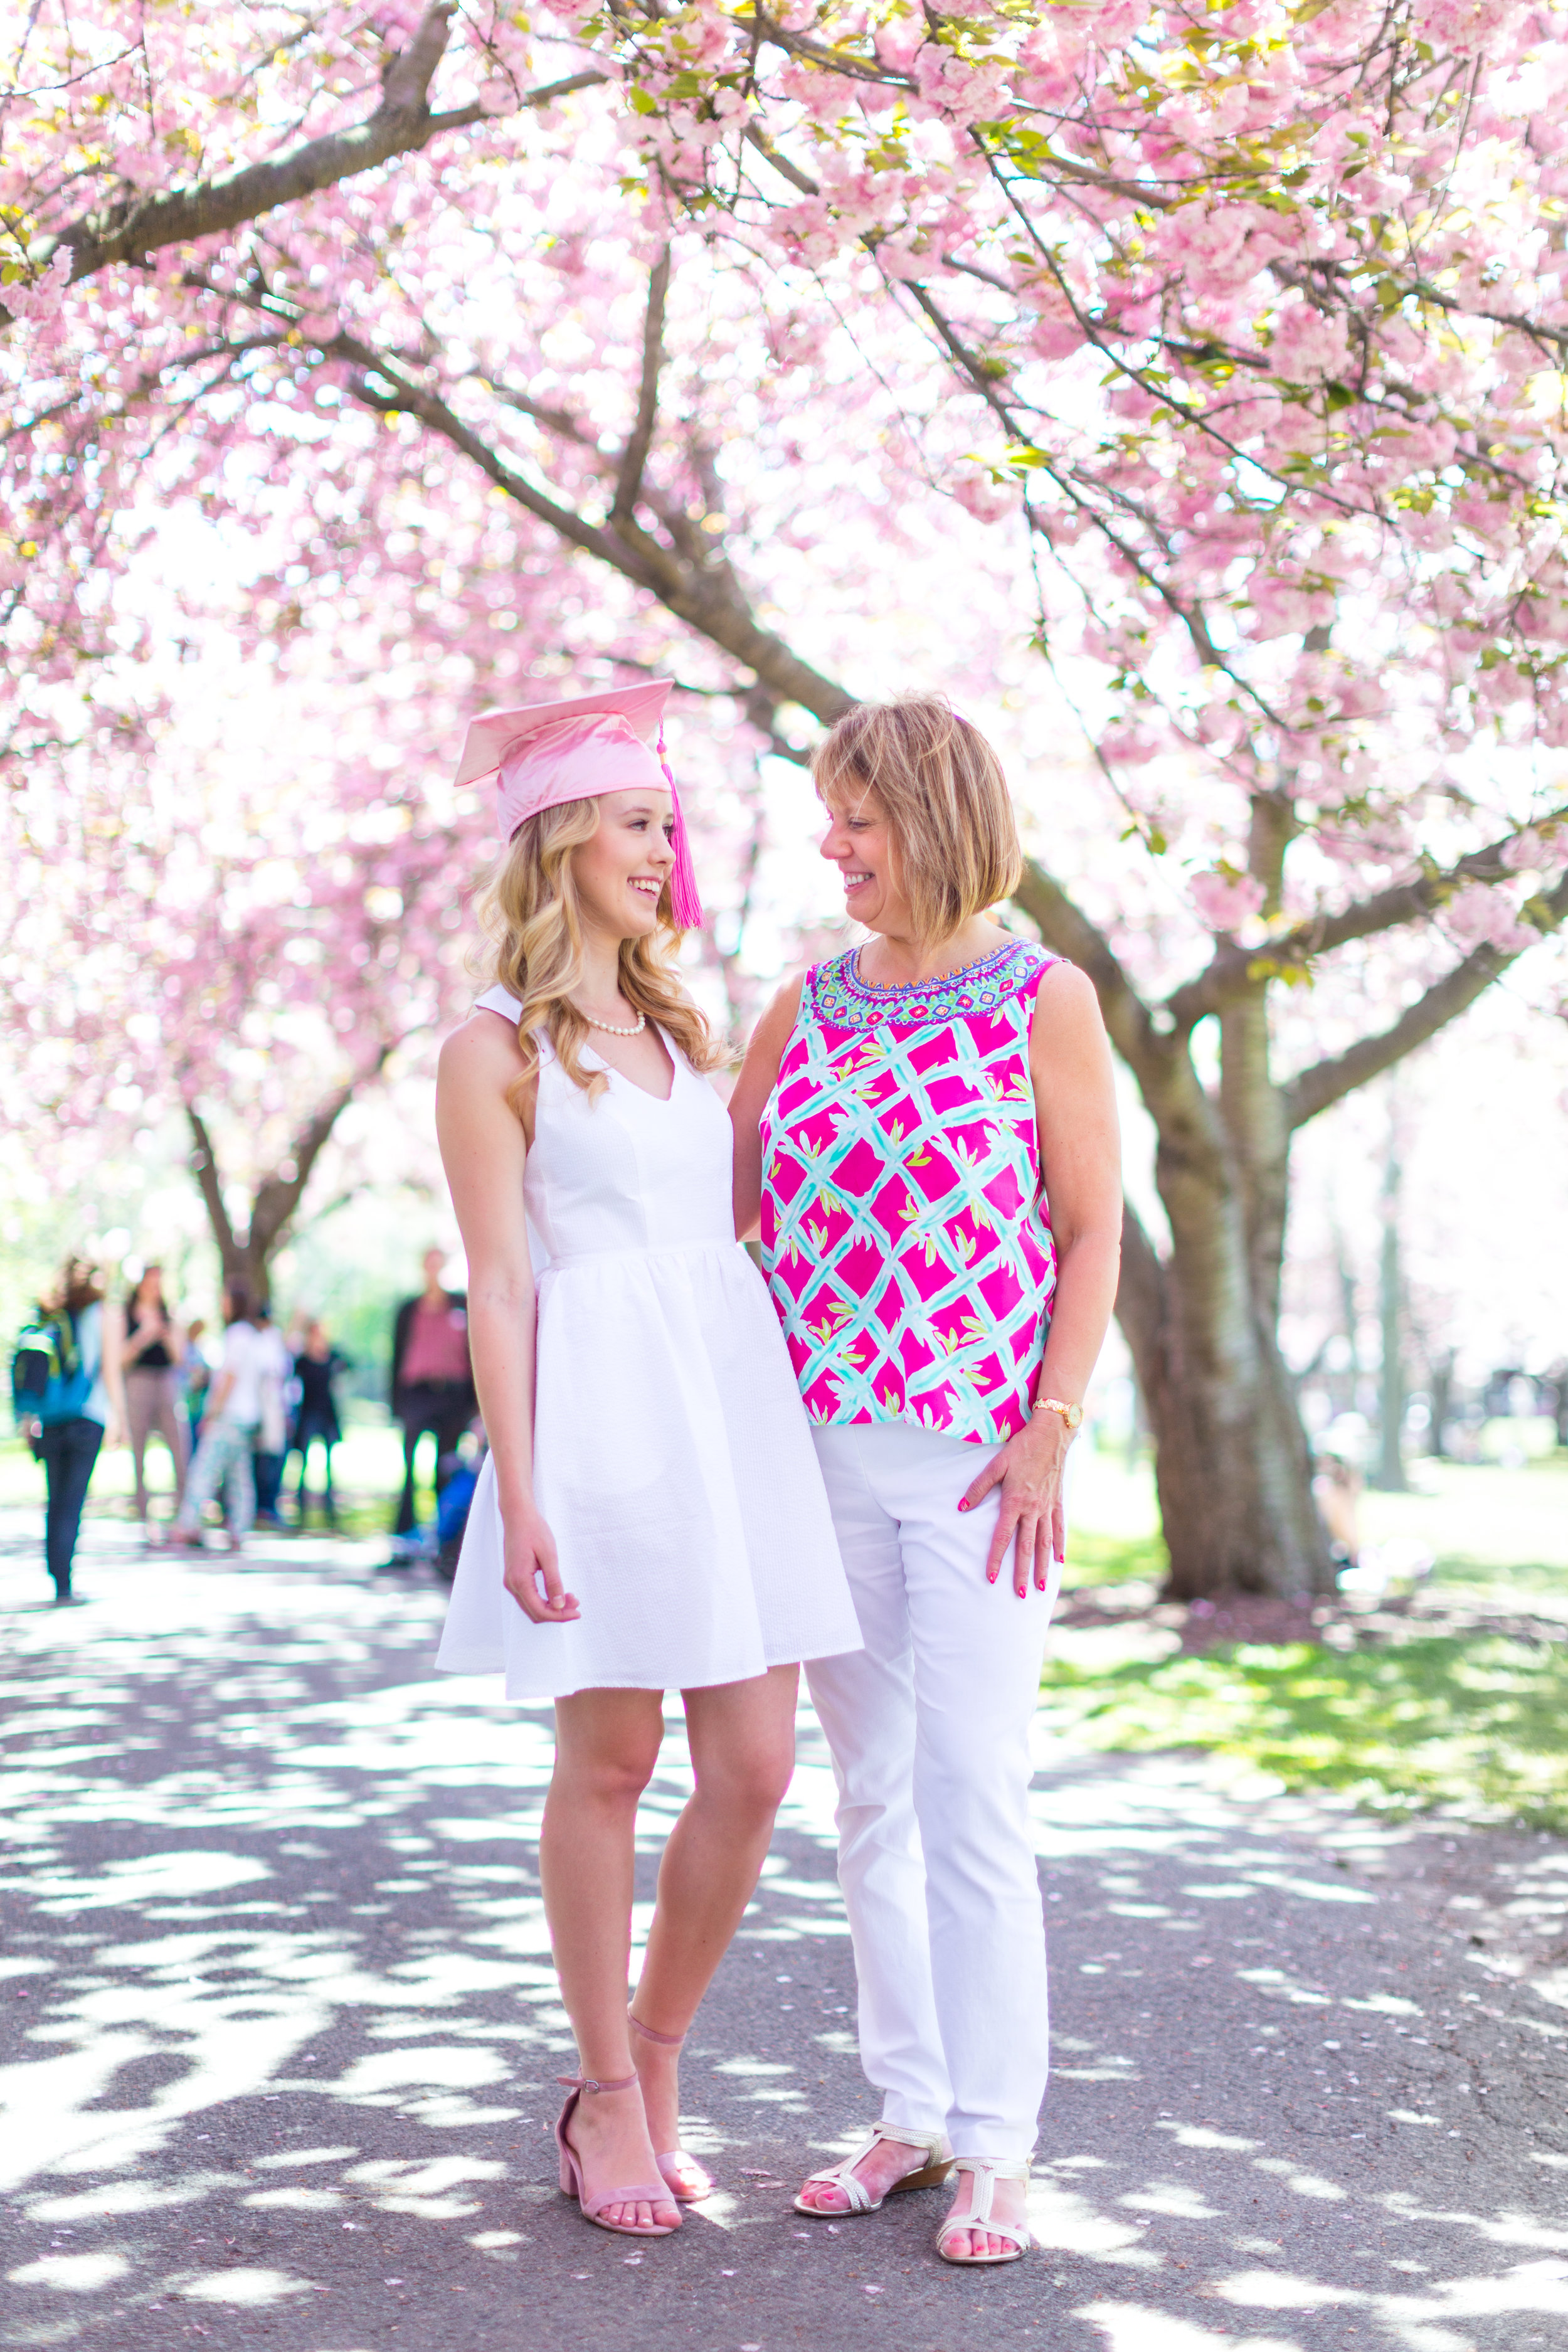 White Graduation Dress Spring Pink Cherry Blossoms NYC-25.jpg